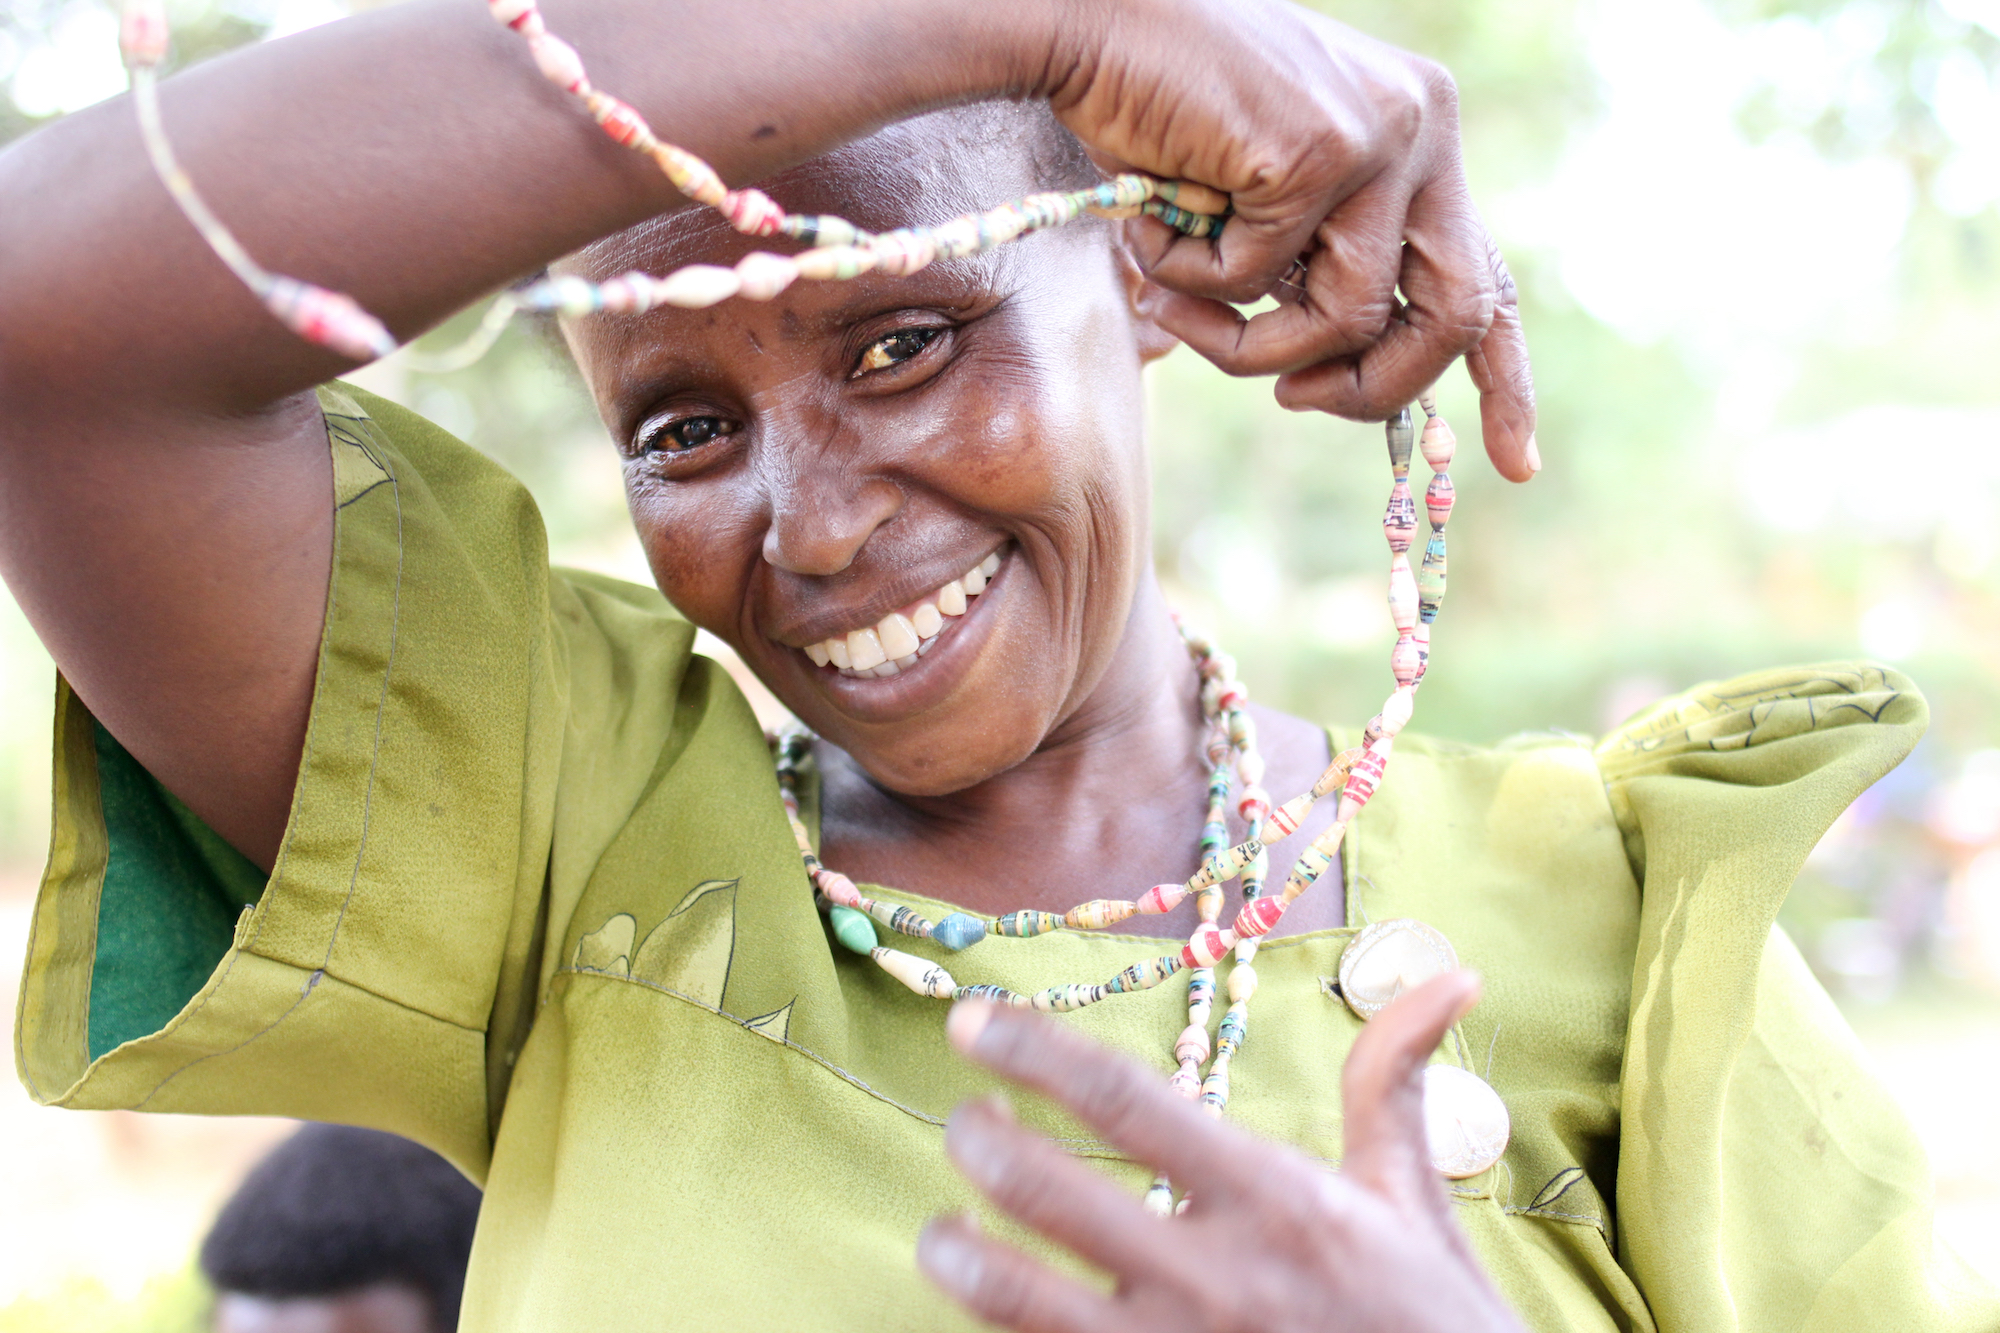 Smiling woman putting strands of beads over her head